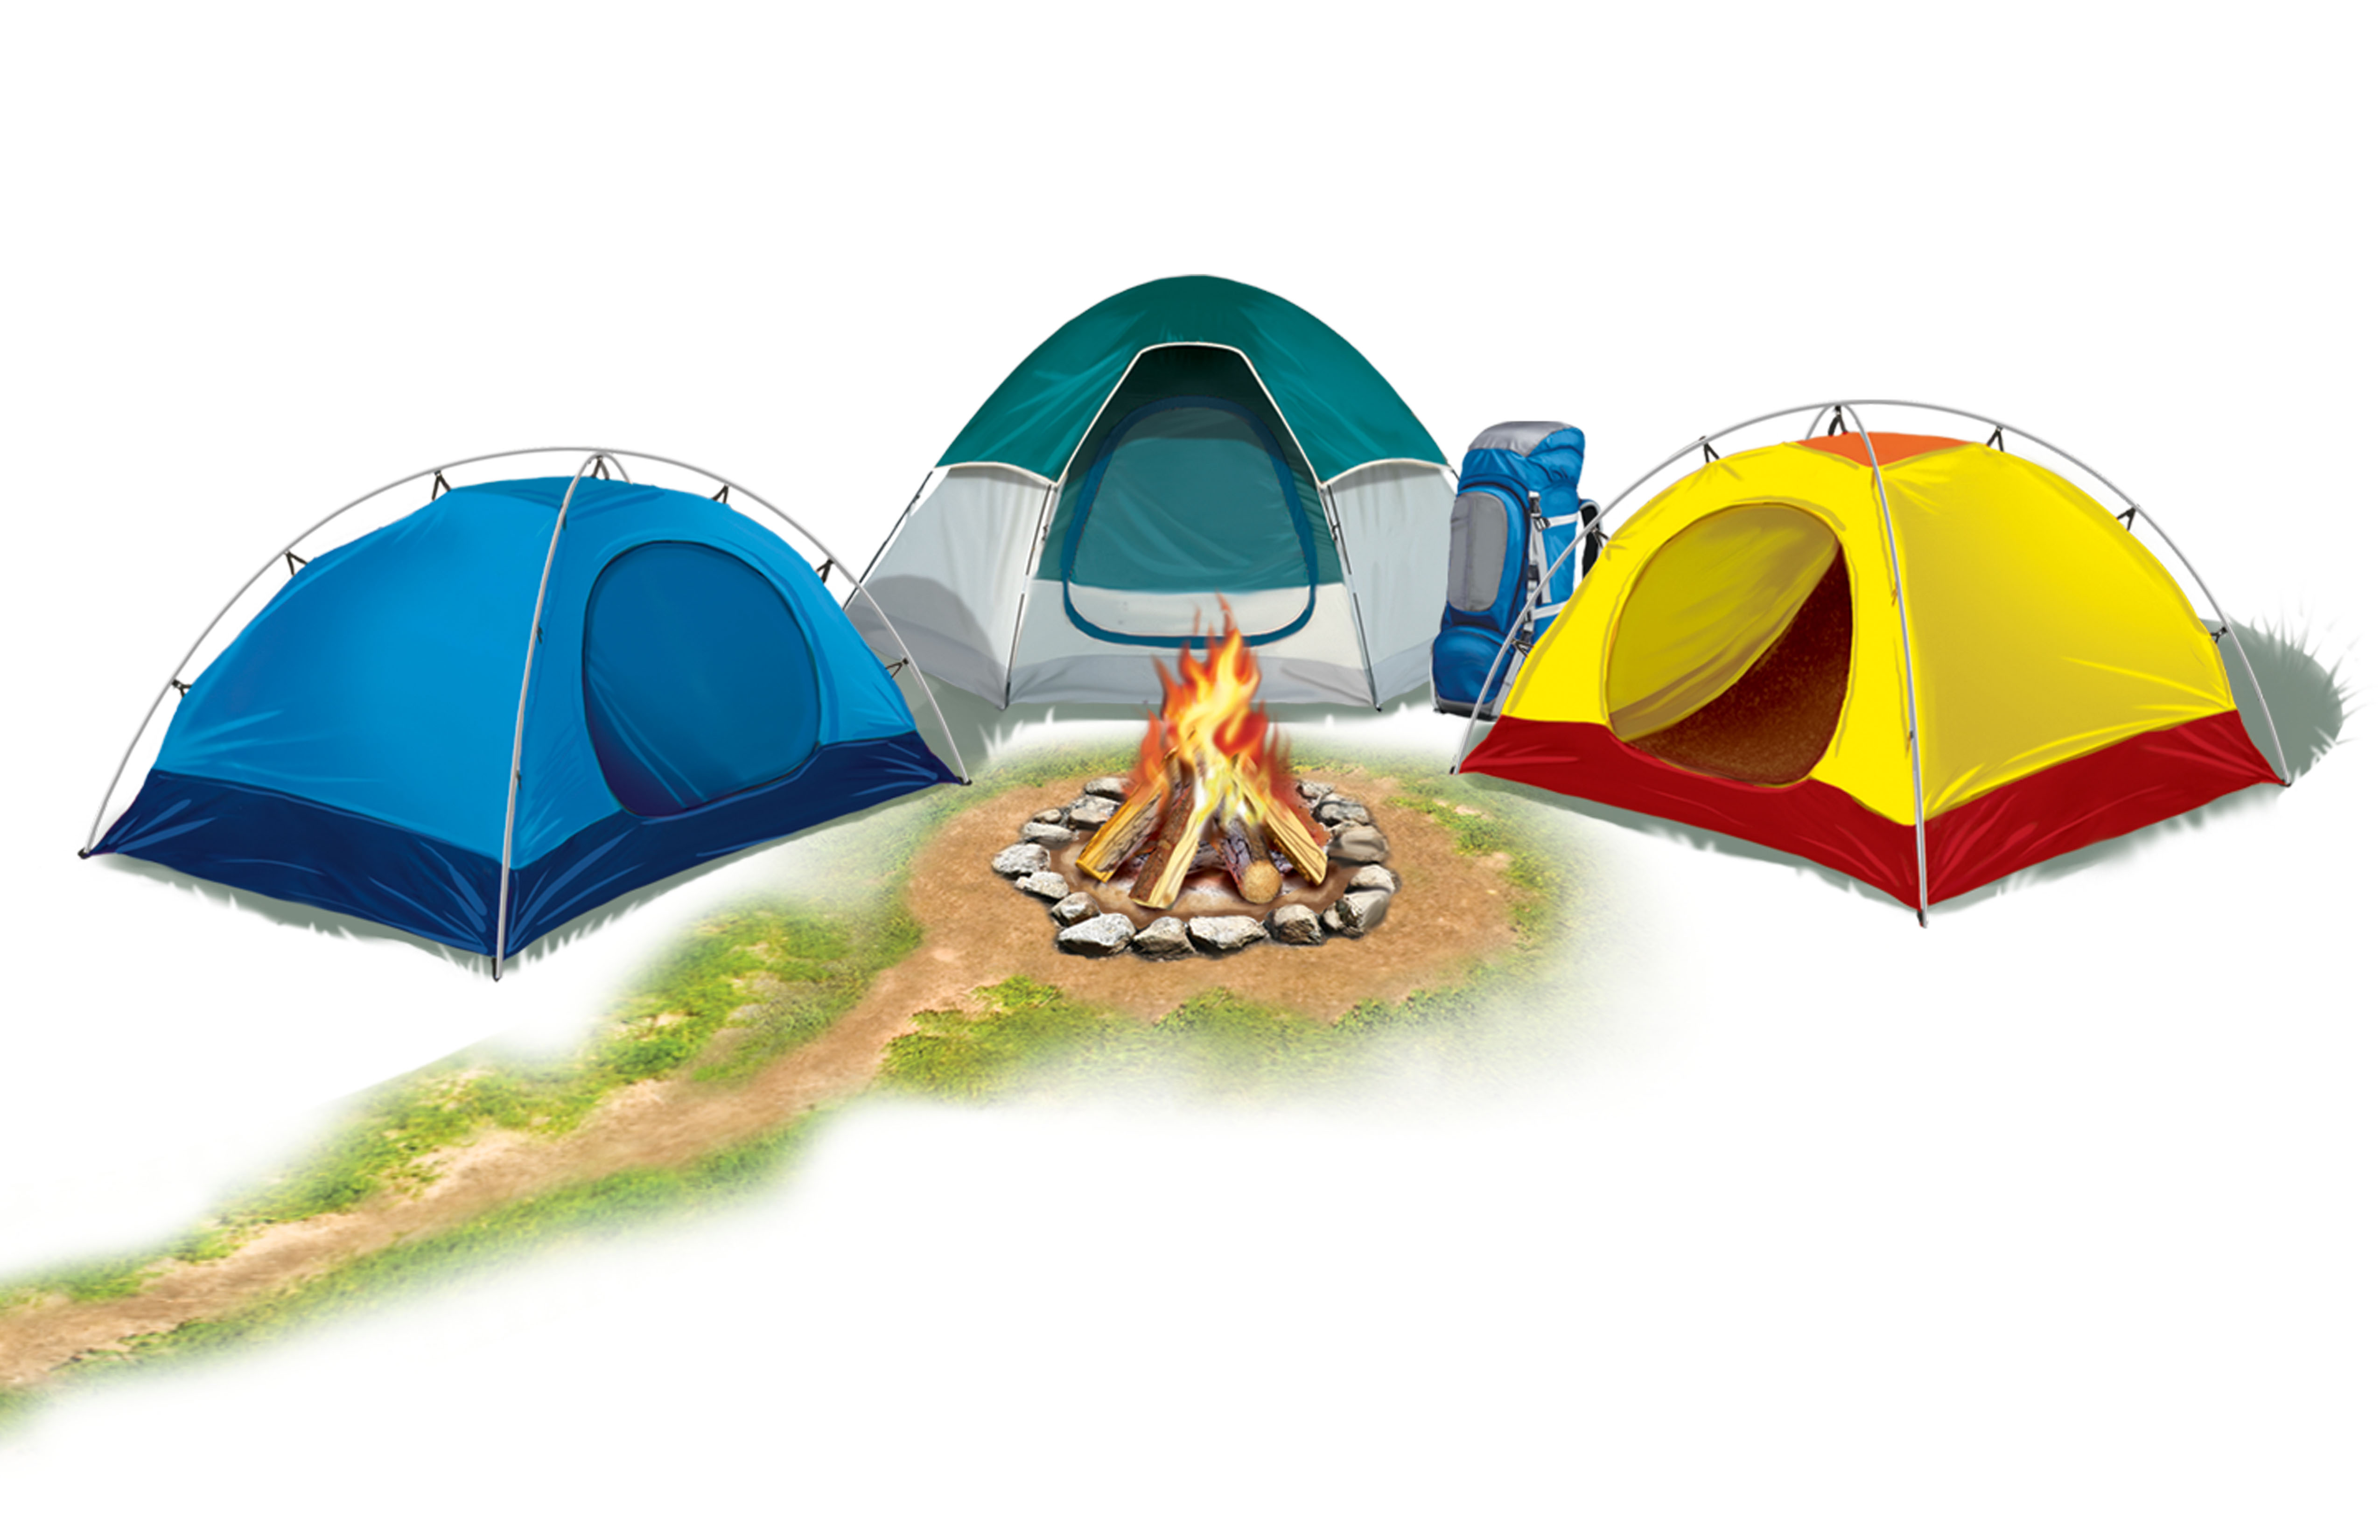 Camping logo clip art transparent library Camping Clipart - Clipart Kid transparent library